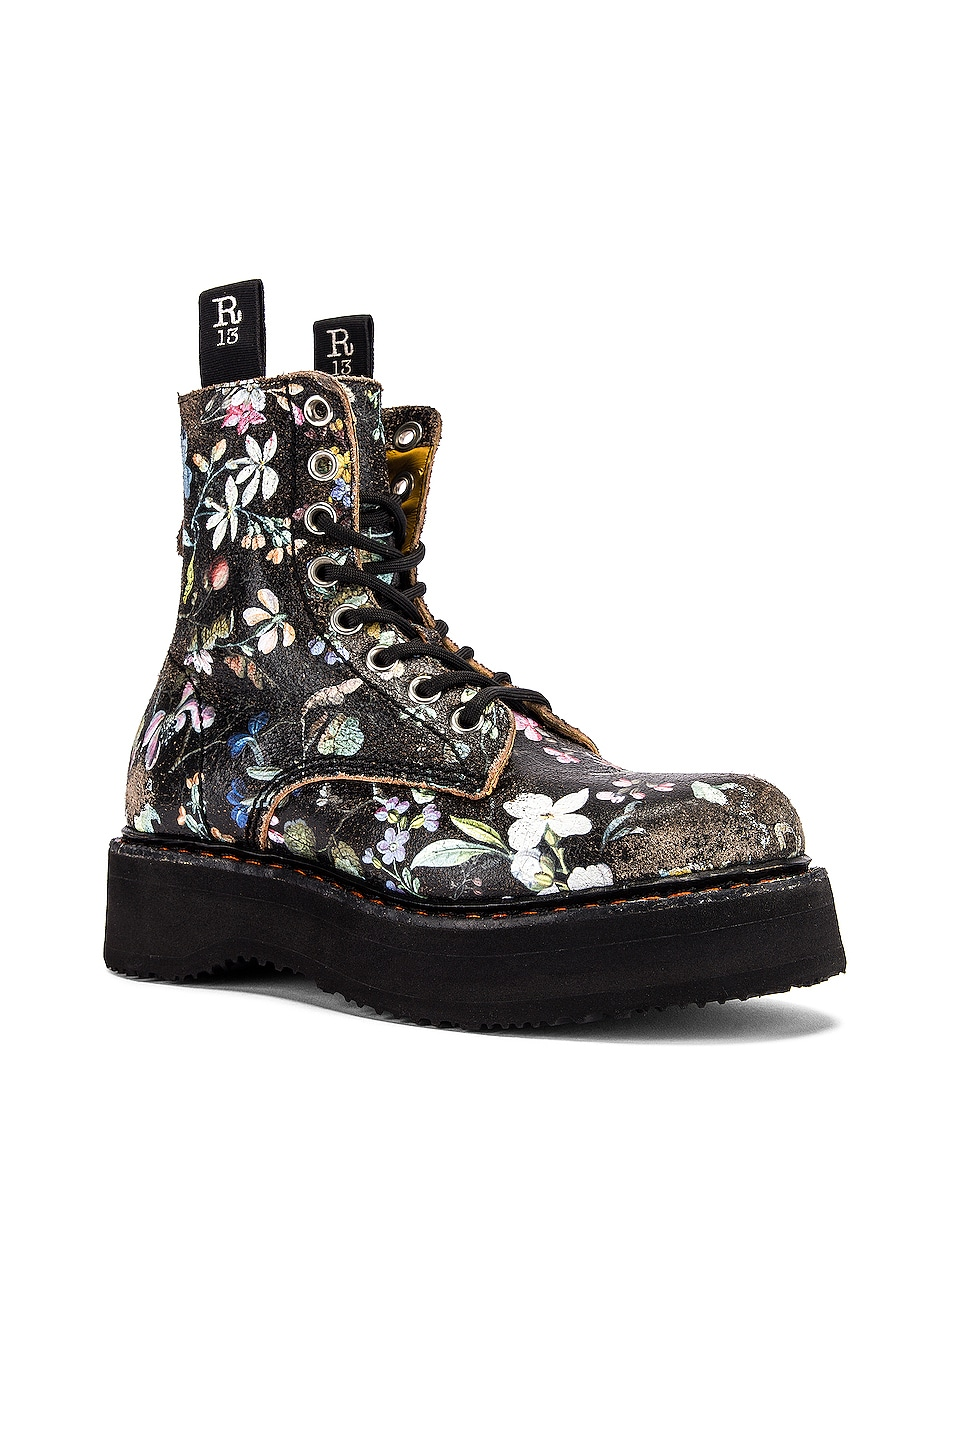 Image 2 of R13 Single Stacked Lace Up Boots in Cracked WK6 Floral